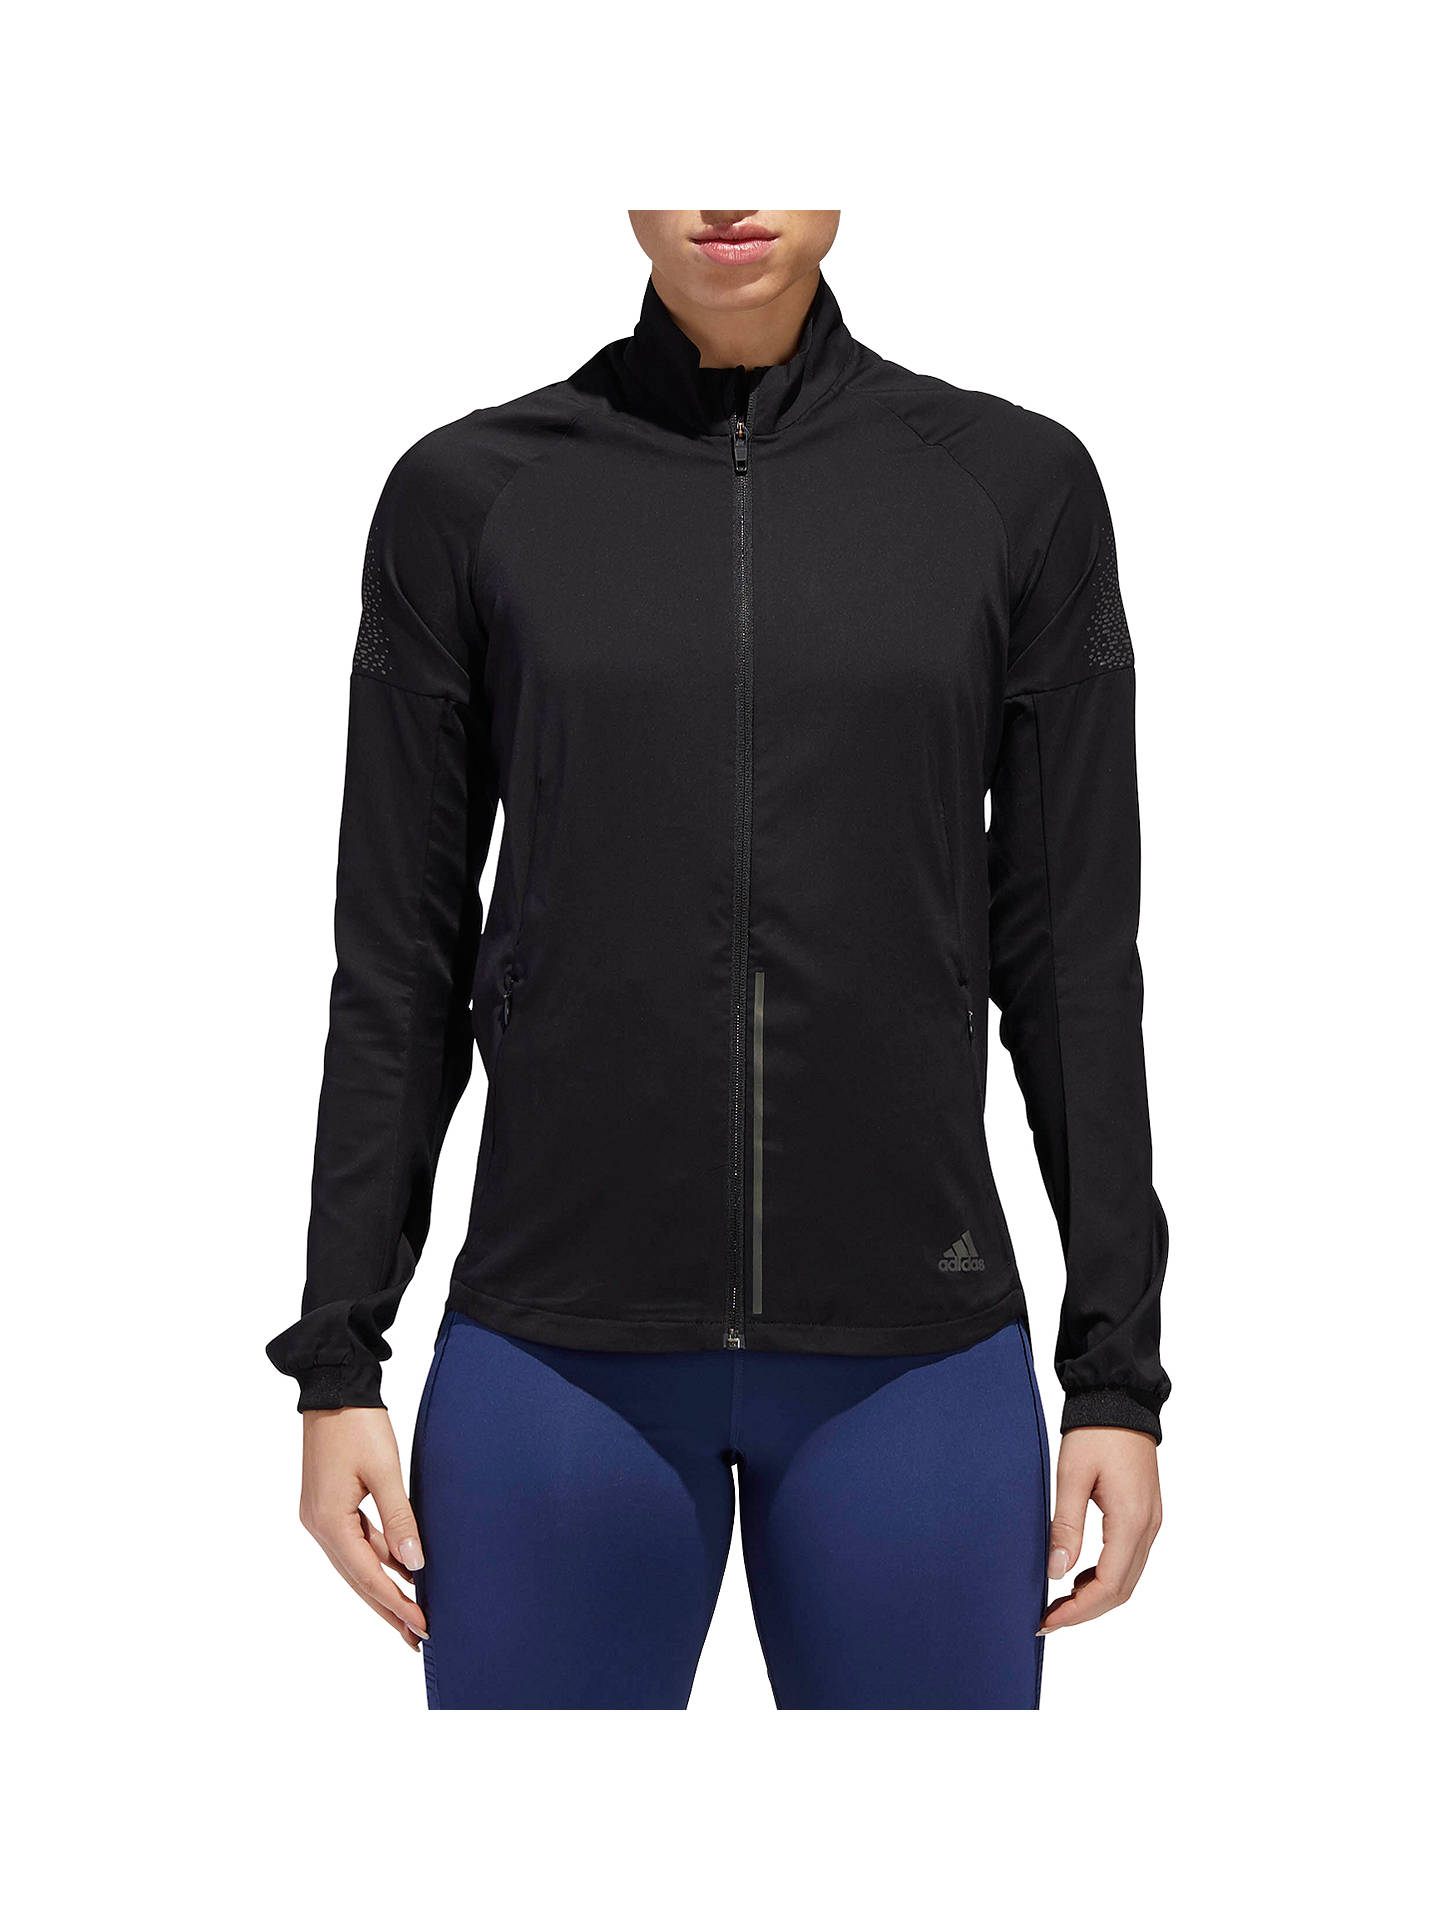 Buyadidas Supernova Confident Three Season Women's Running Jacket, Black, XS Online at johnlewis.com